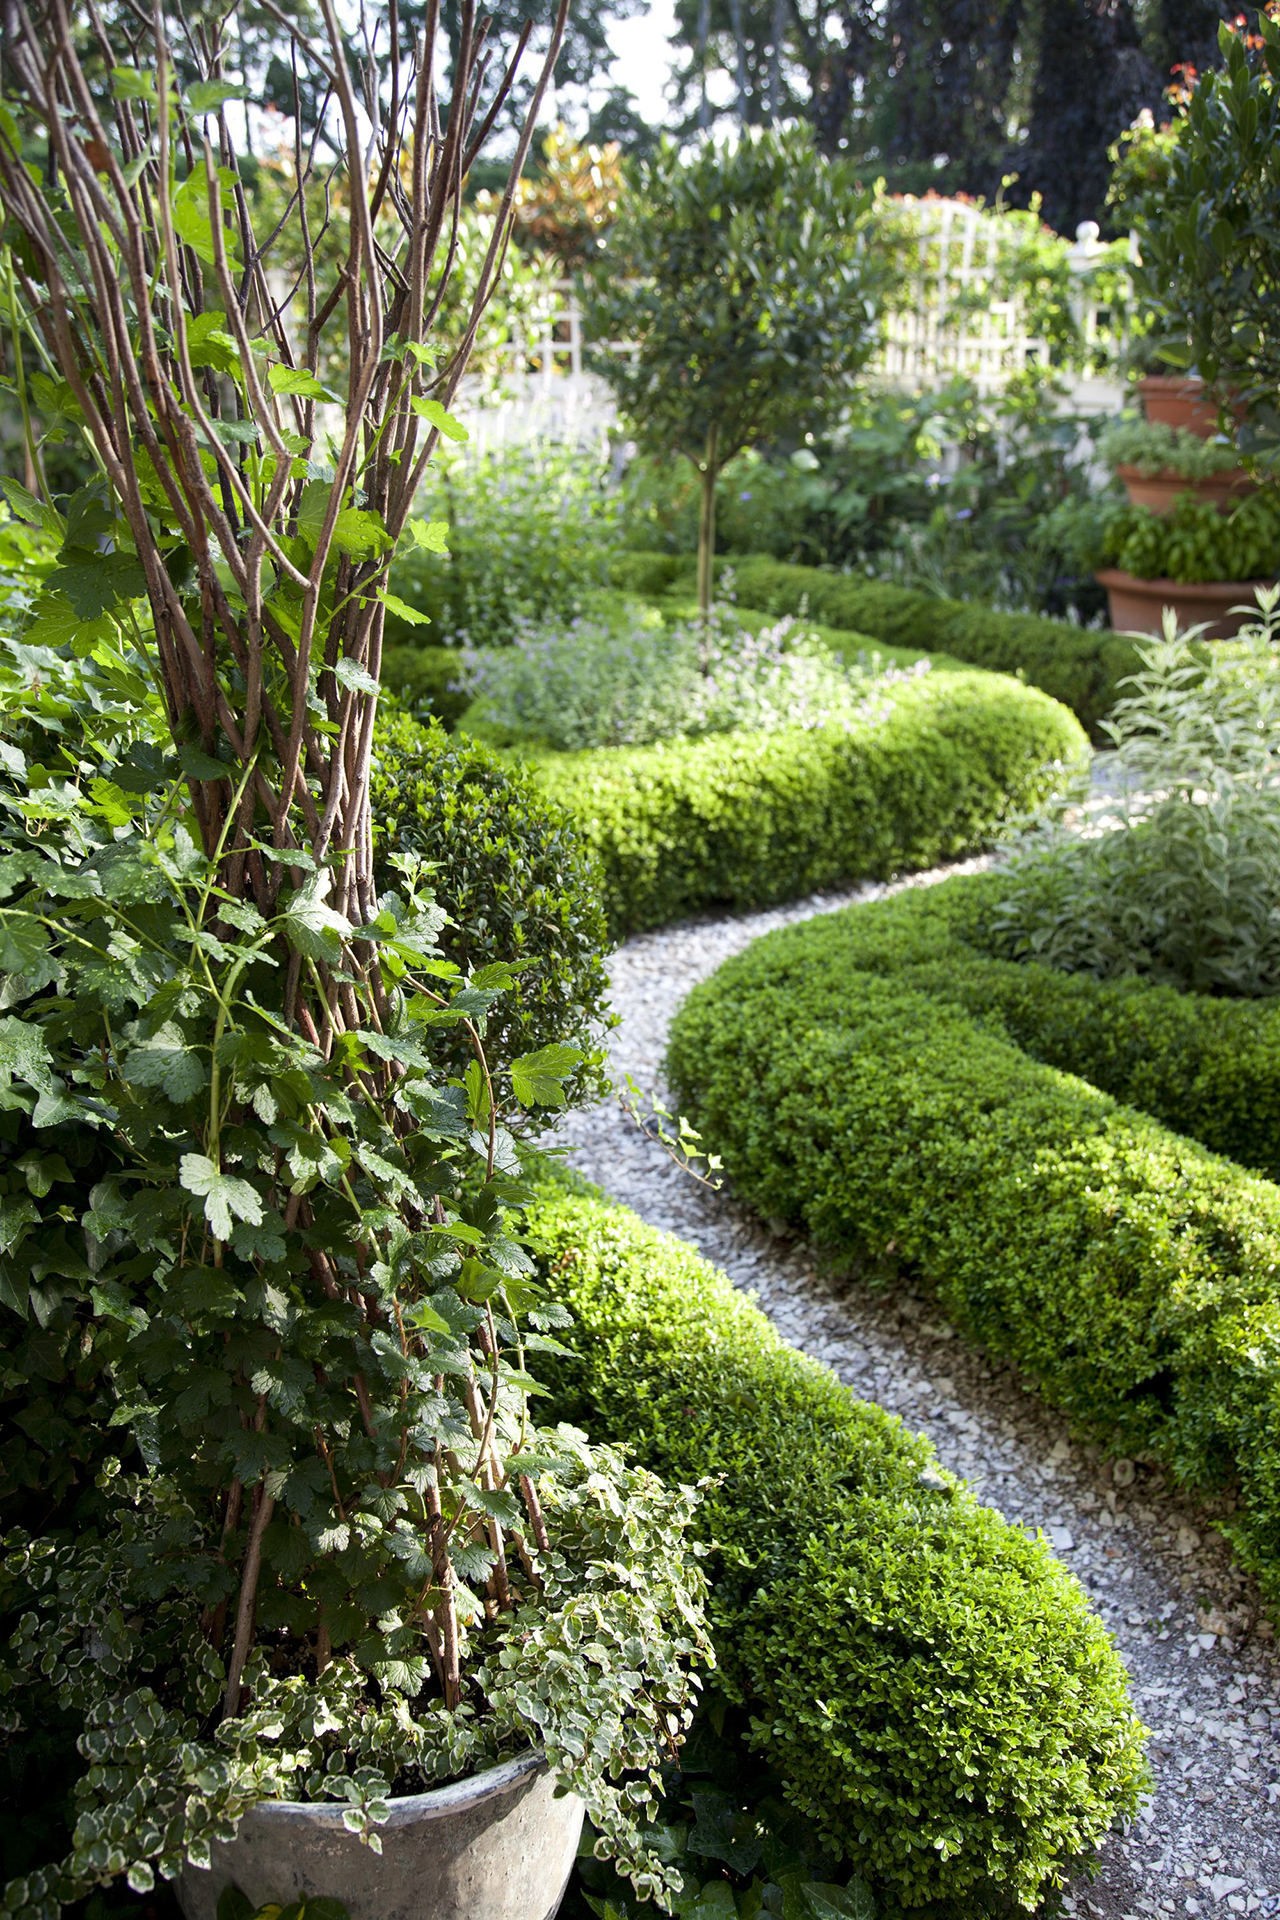 50 Best Backyard Landscaping Ideas and Designs in 2020 on Best Backyard Landscaping id=65086